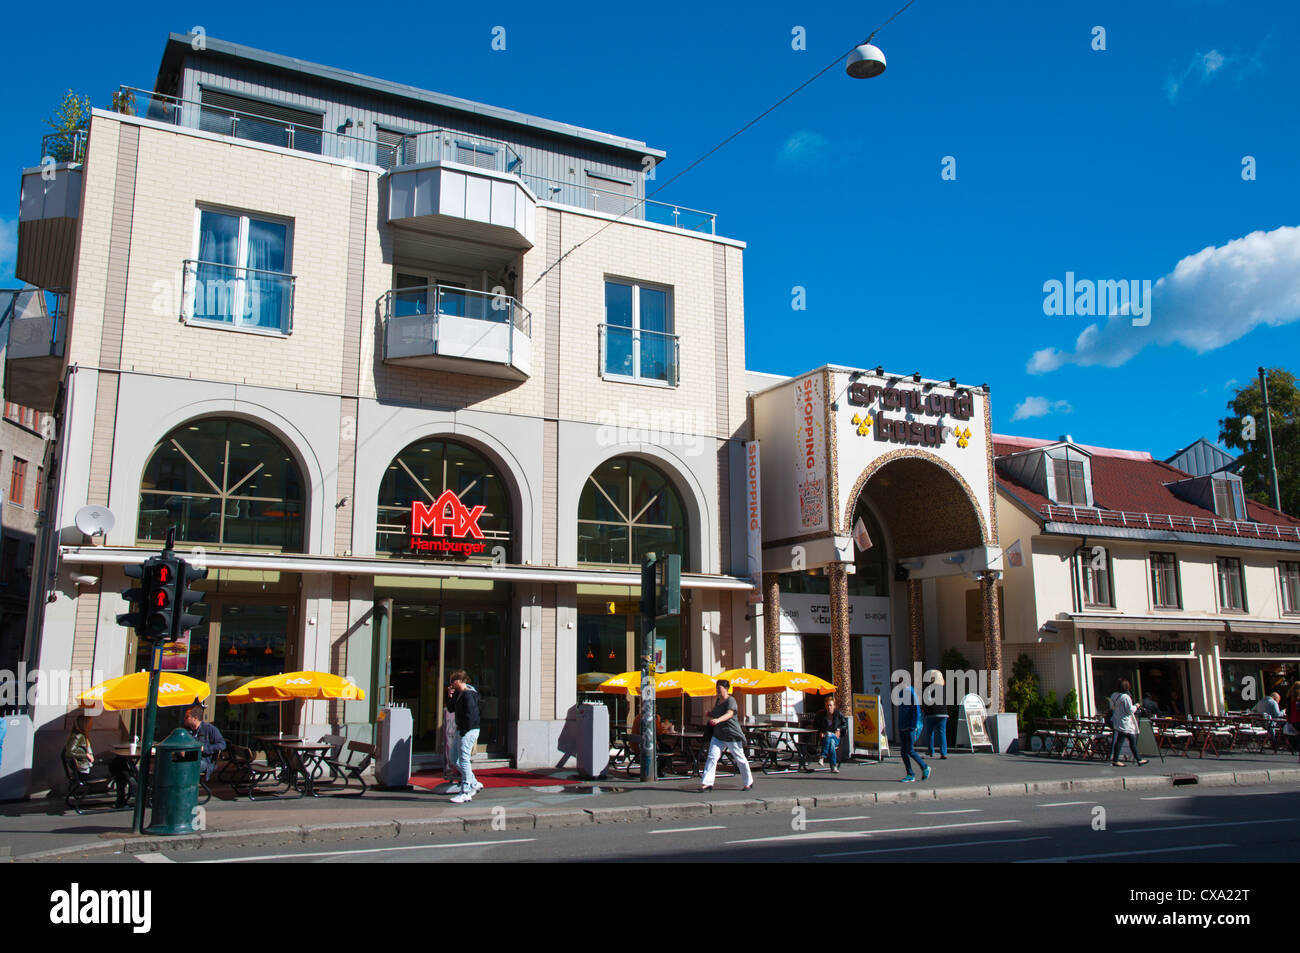 Gronlandsleiret street Gronland district central Oslo Norway Europe - Stock Image